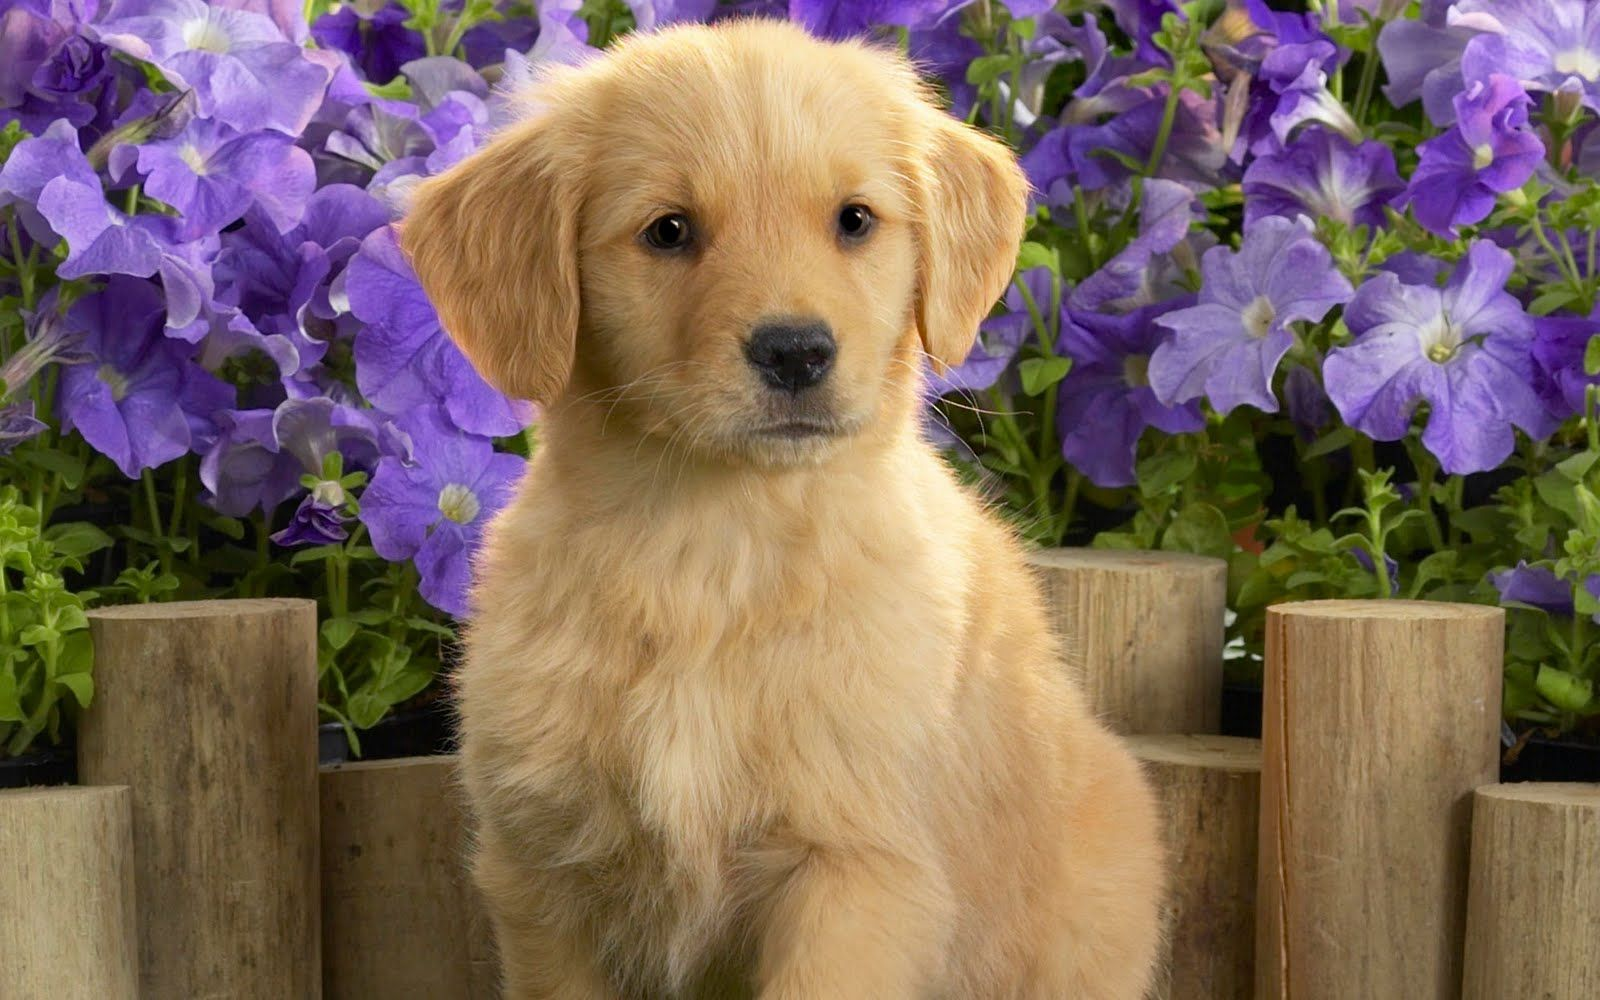 Puppy With Images Golden Labrador Puppies Puppy Wallpaper